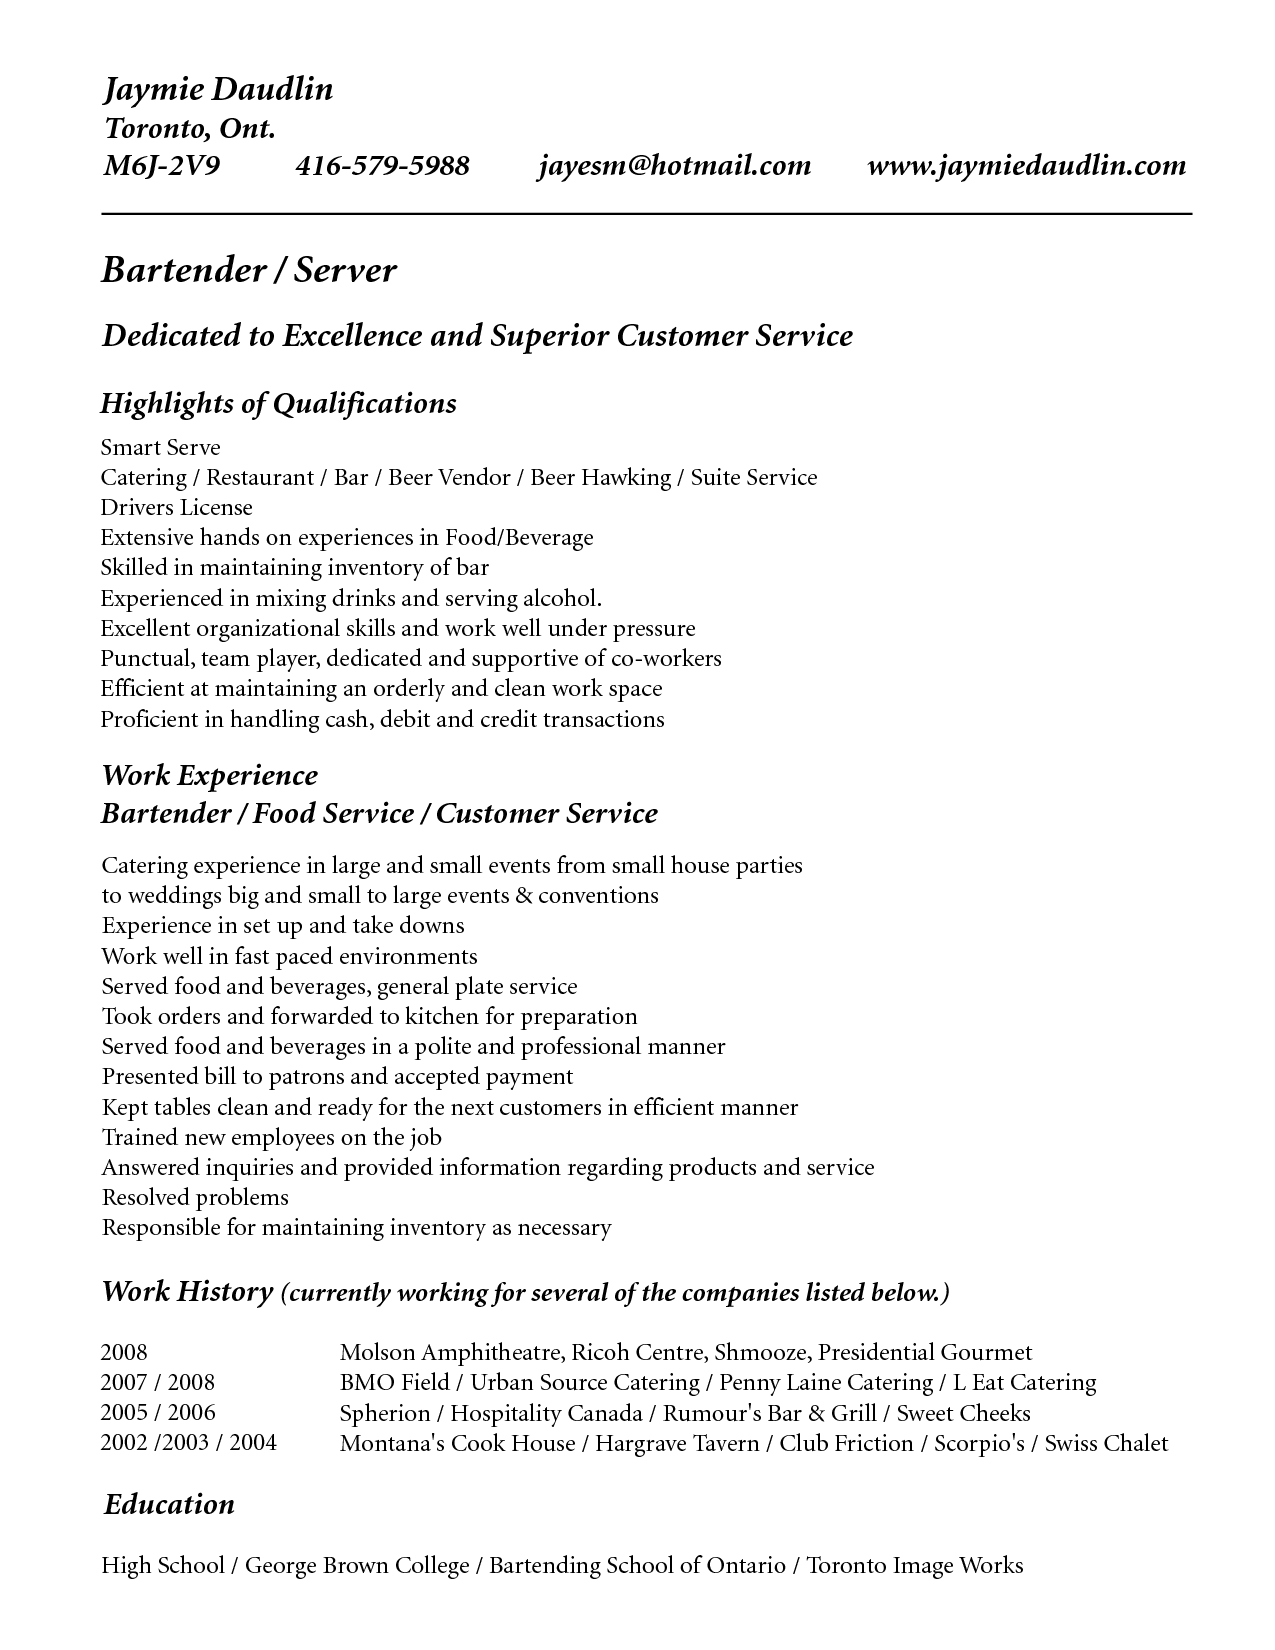 Resume Skills For Server Resume Template For Bartender No Experience Http Www